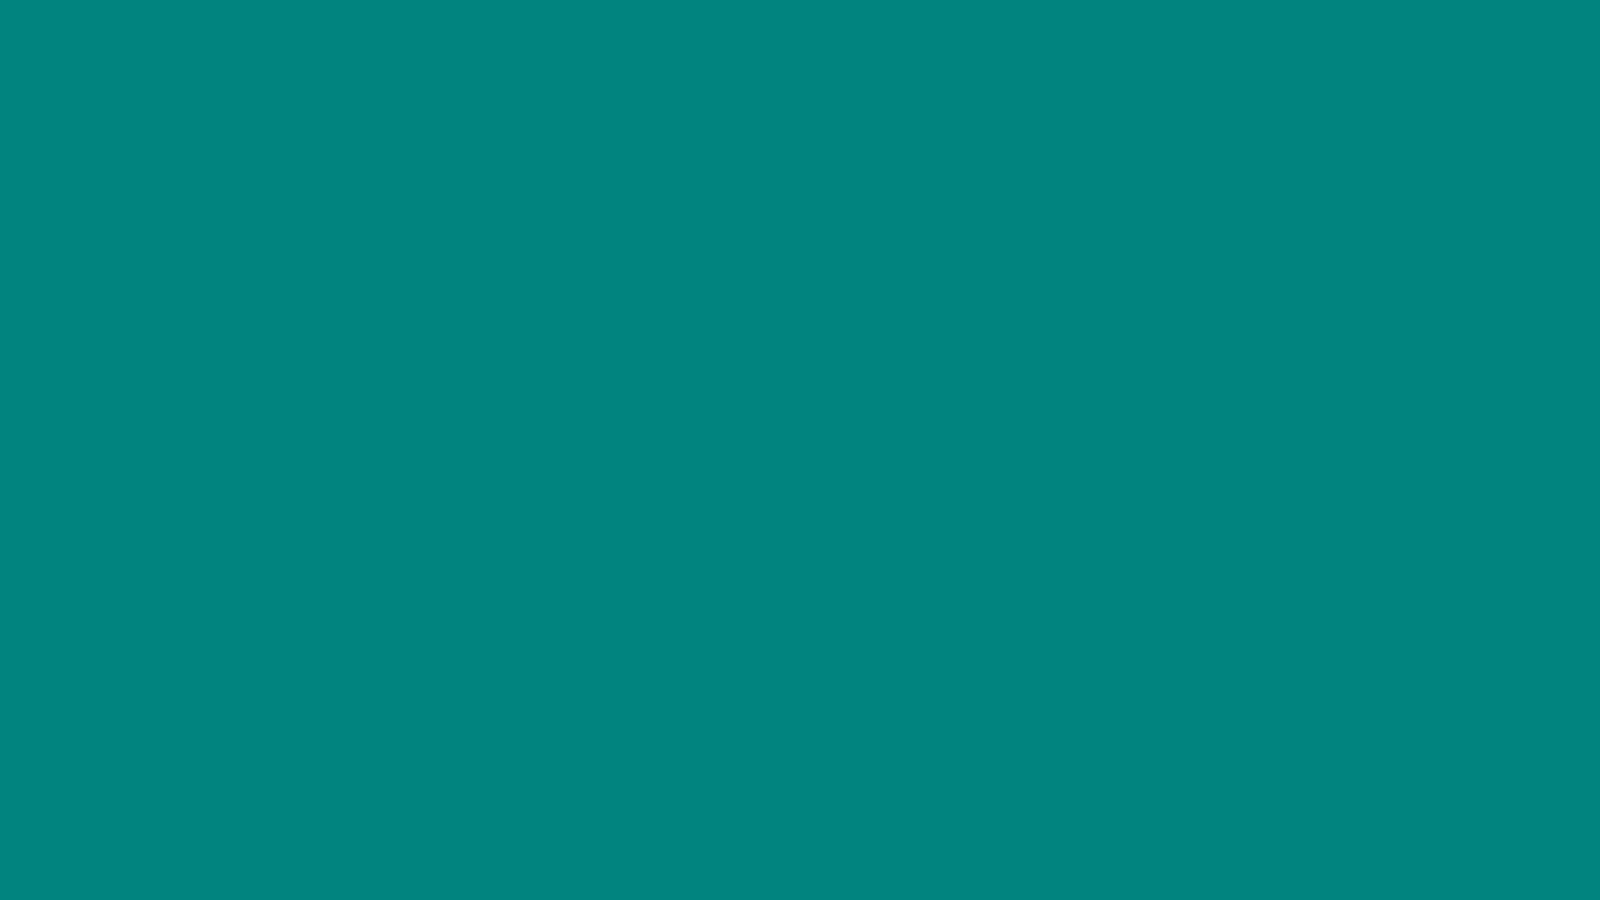 1600x900 Teal Green Solid Color Background